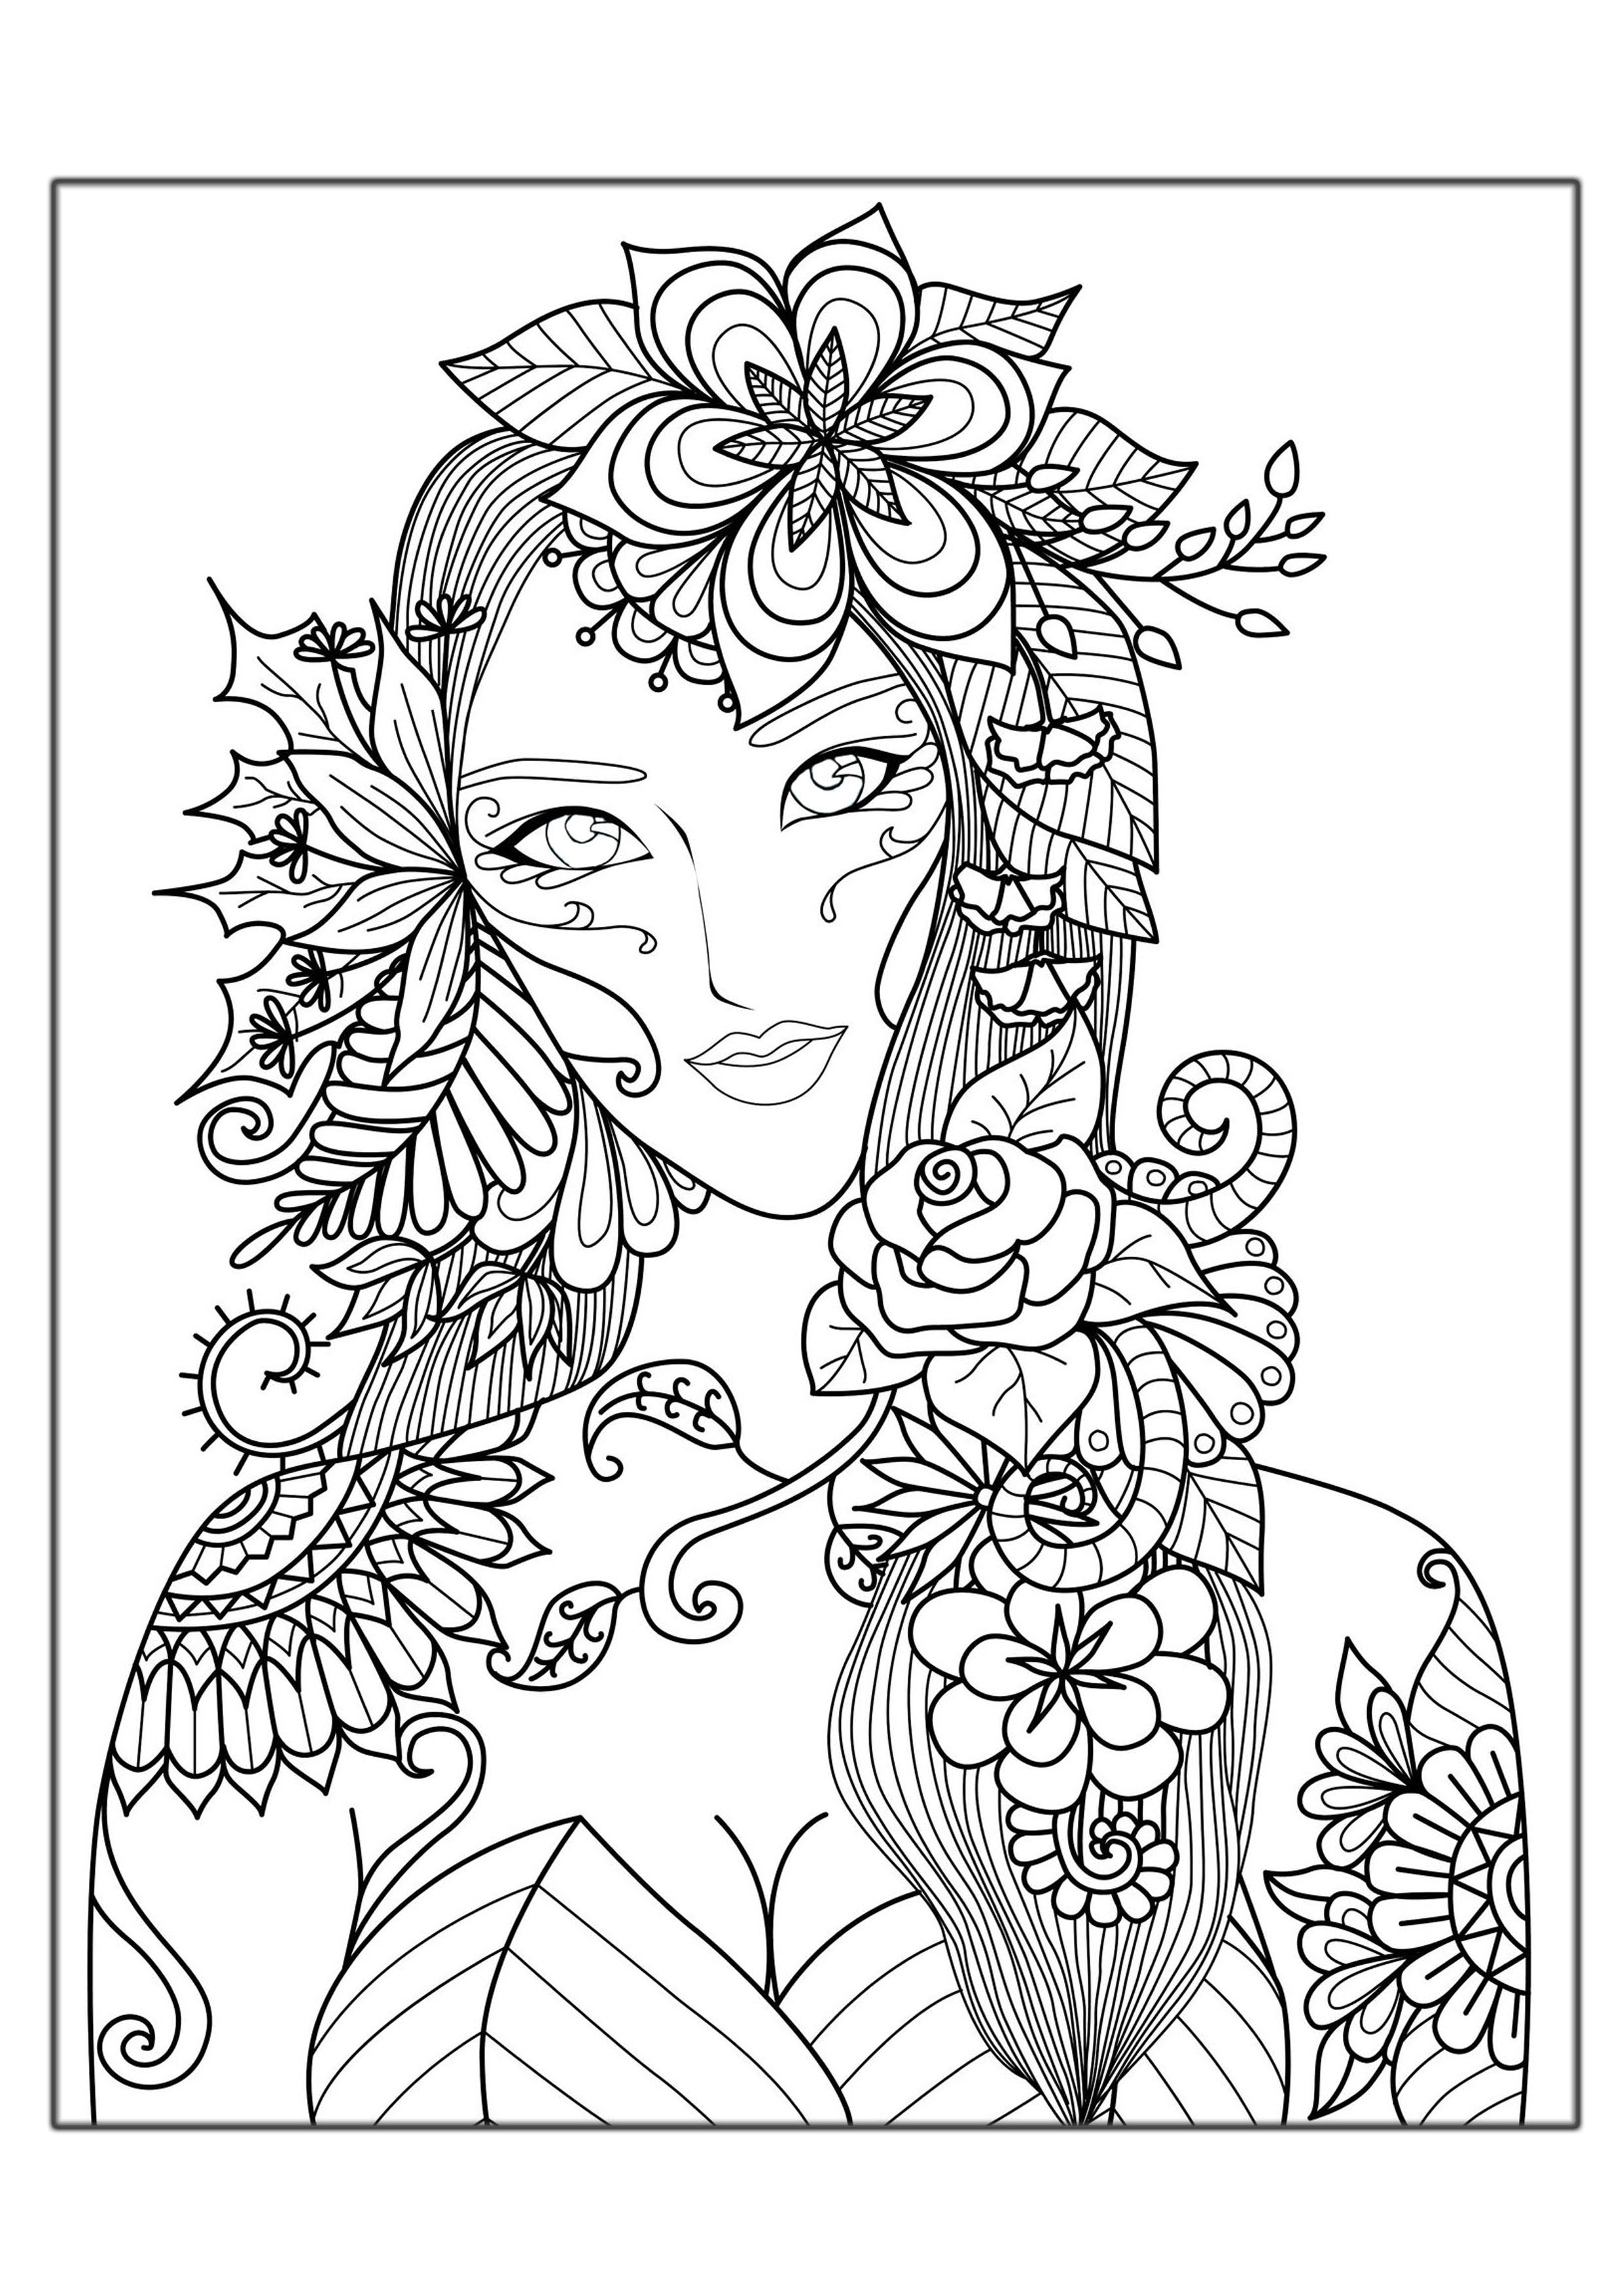 hard coloring pages for adults free hard coloring pages for adults printable to download adults hard for pages coloring